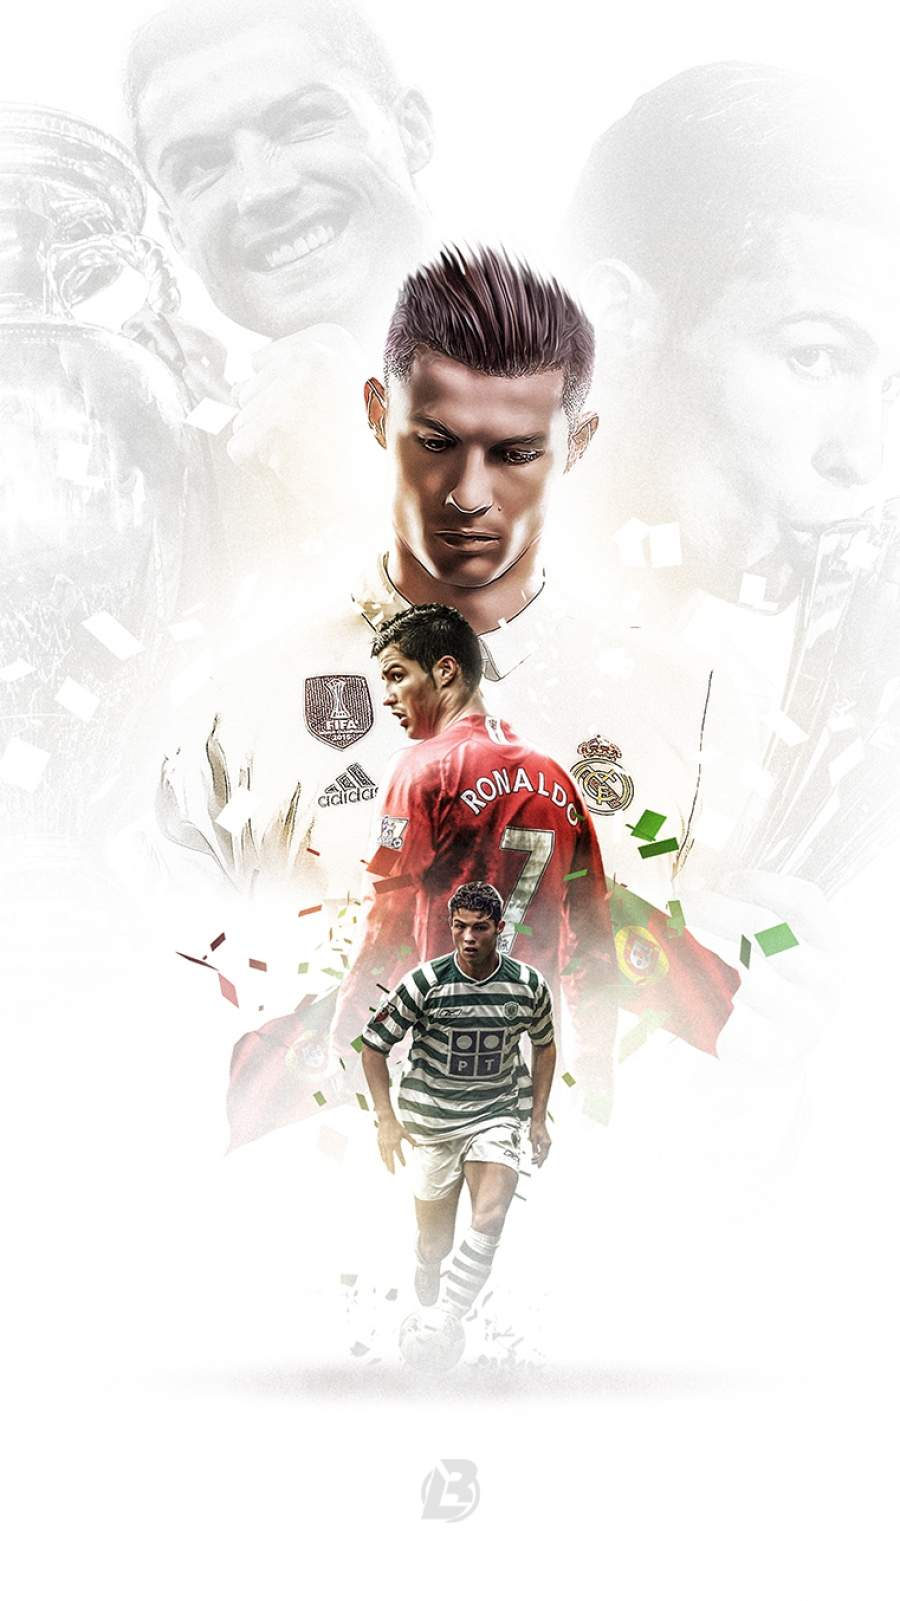 Cristiano Ronaldo Legacy iPhone Wallpaper